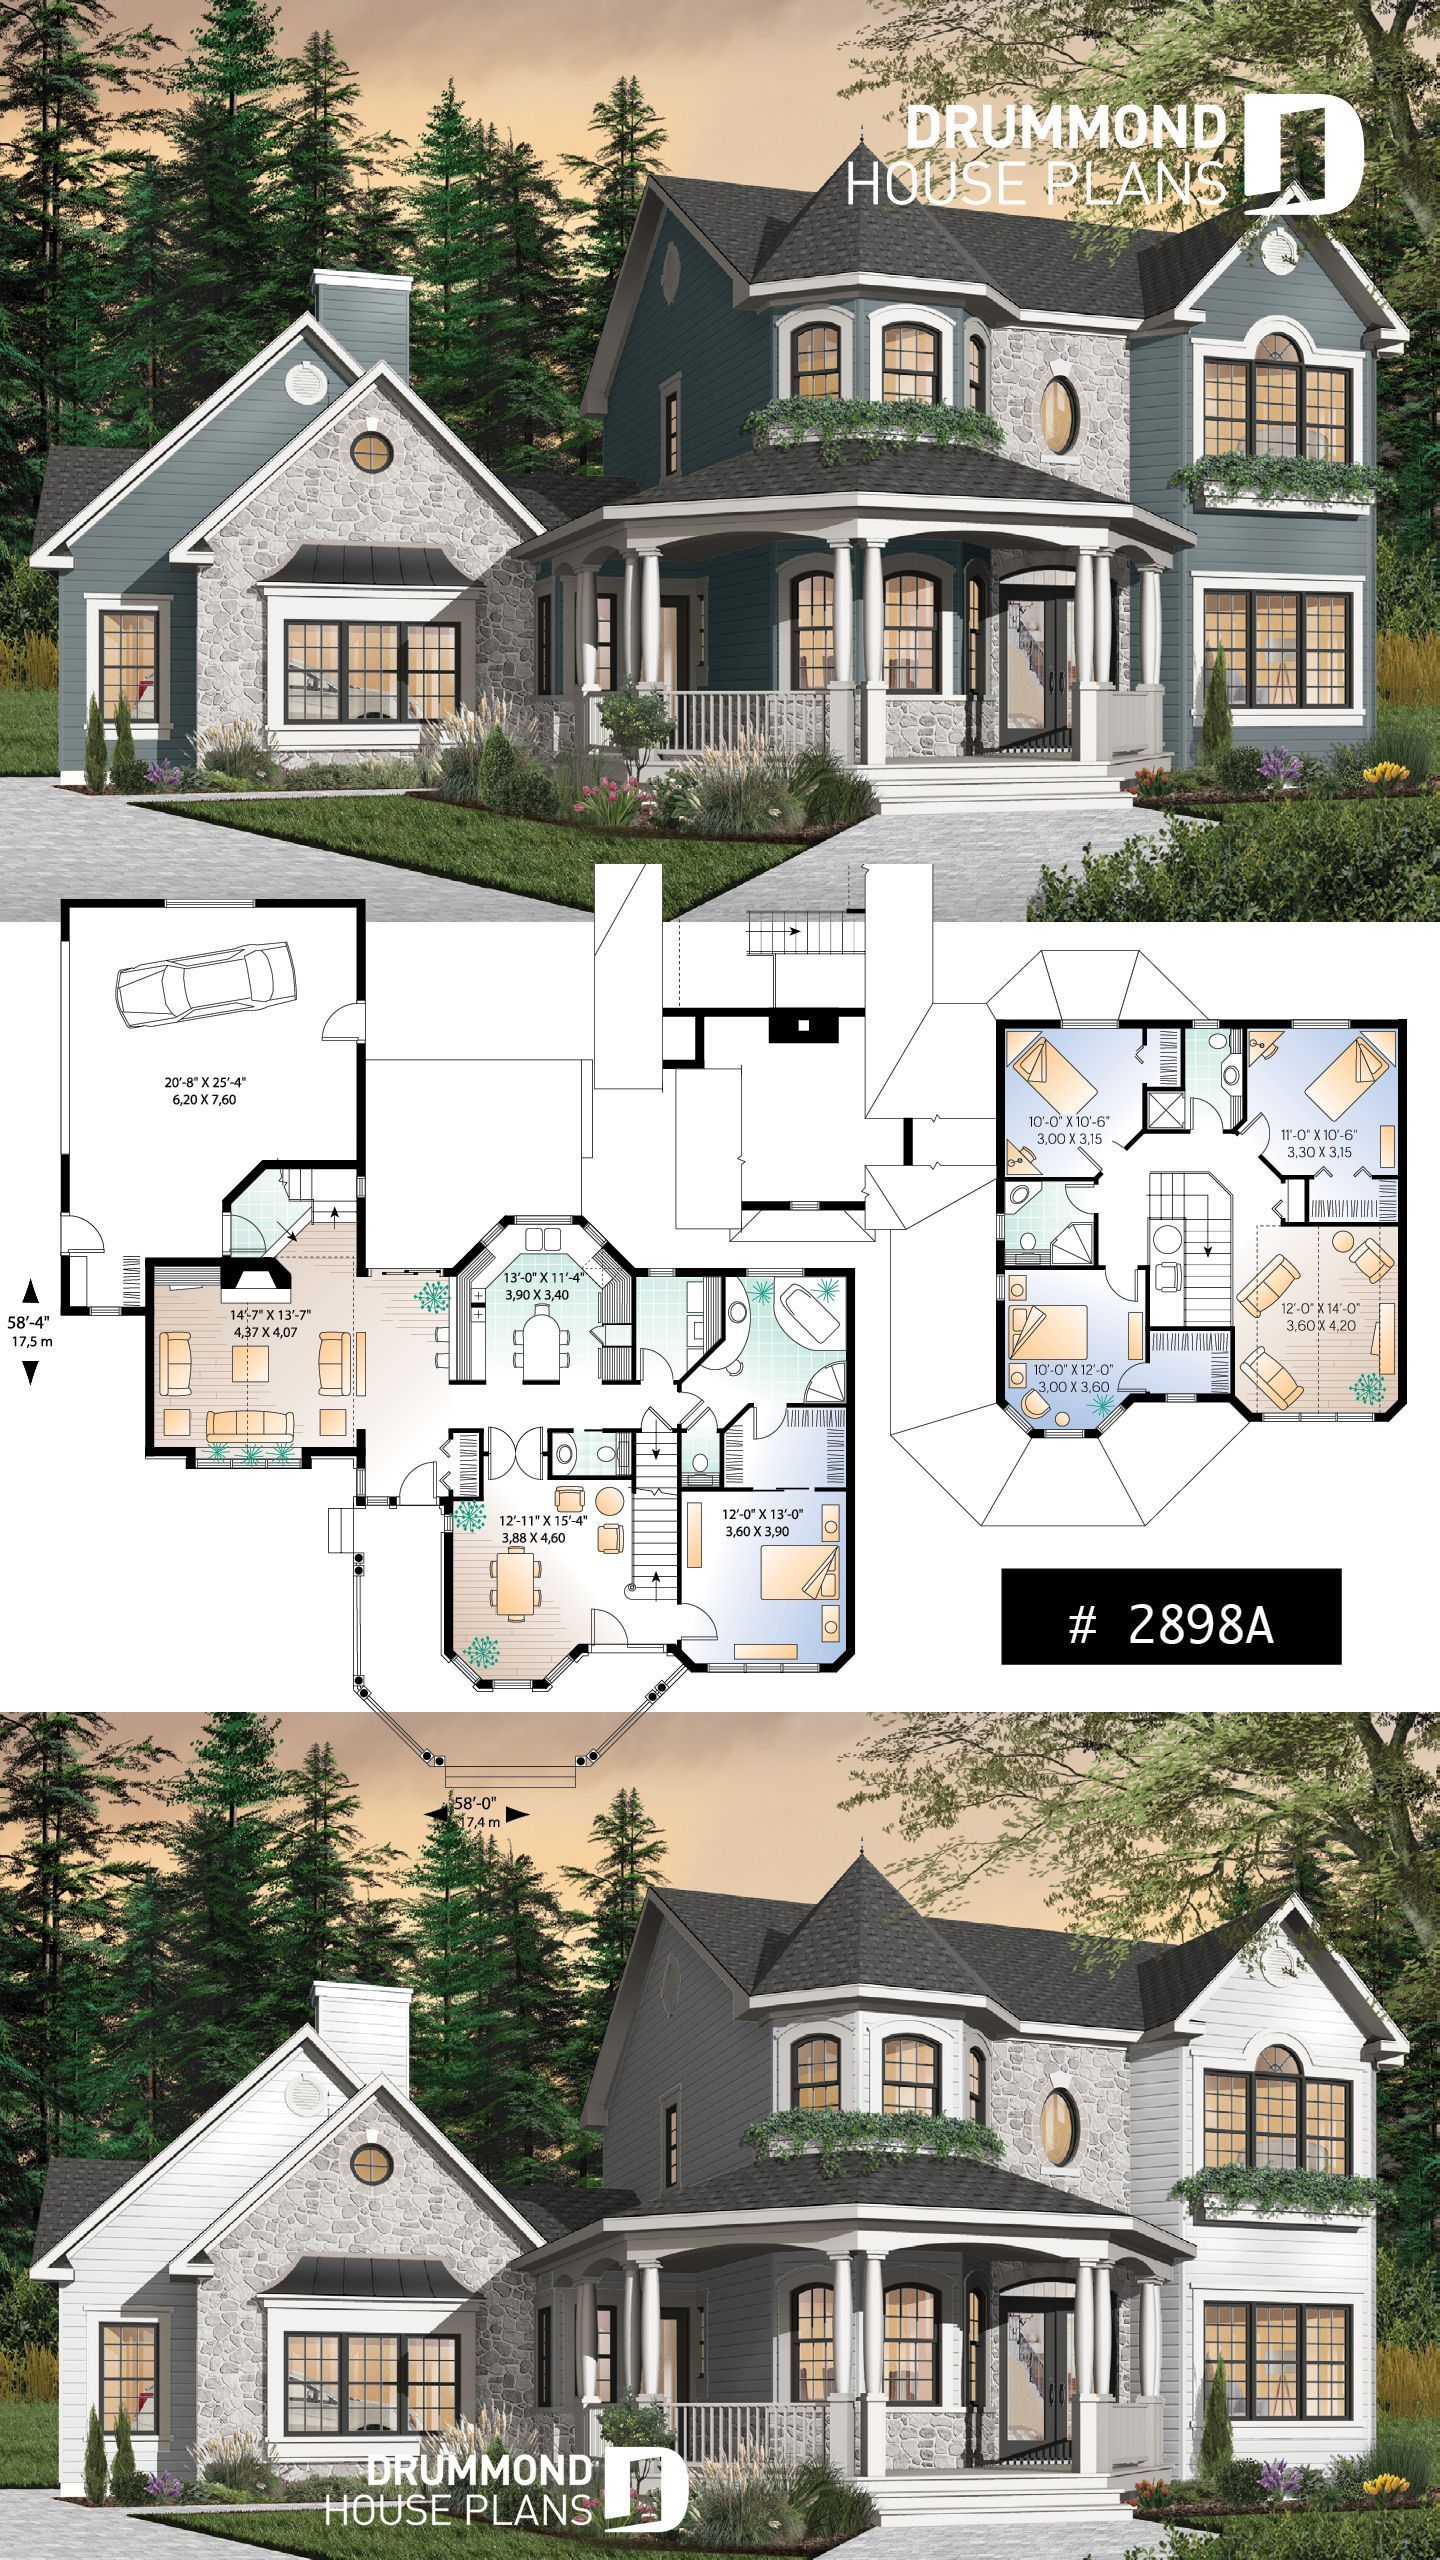 25 Best Tiny House Plansfloor Plans Floor Plans 4 To 6 Bedrooms Victorian Two Story Home Plan Larg In 2020 Victorian House Plans Sims House Design House Blueprints